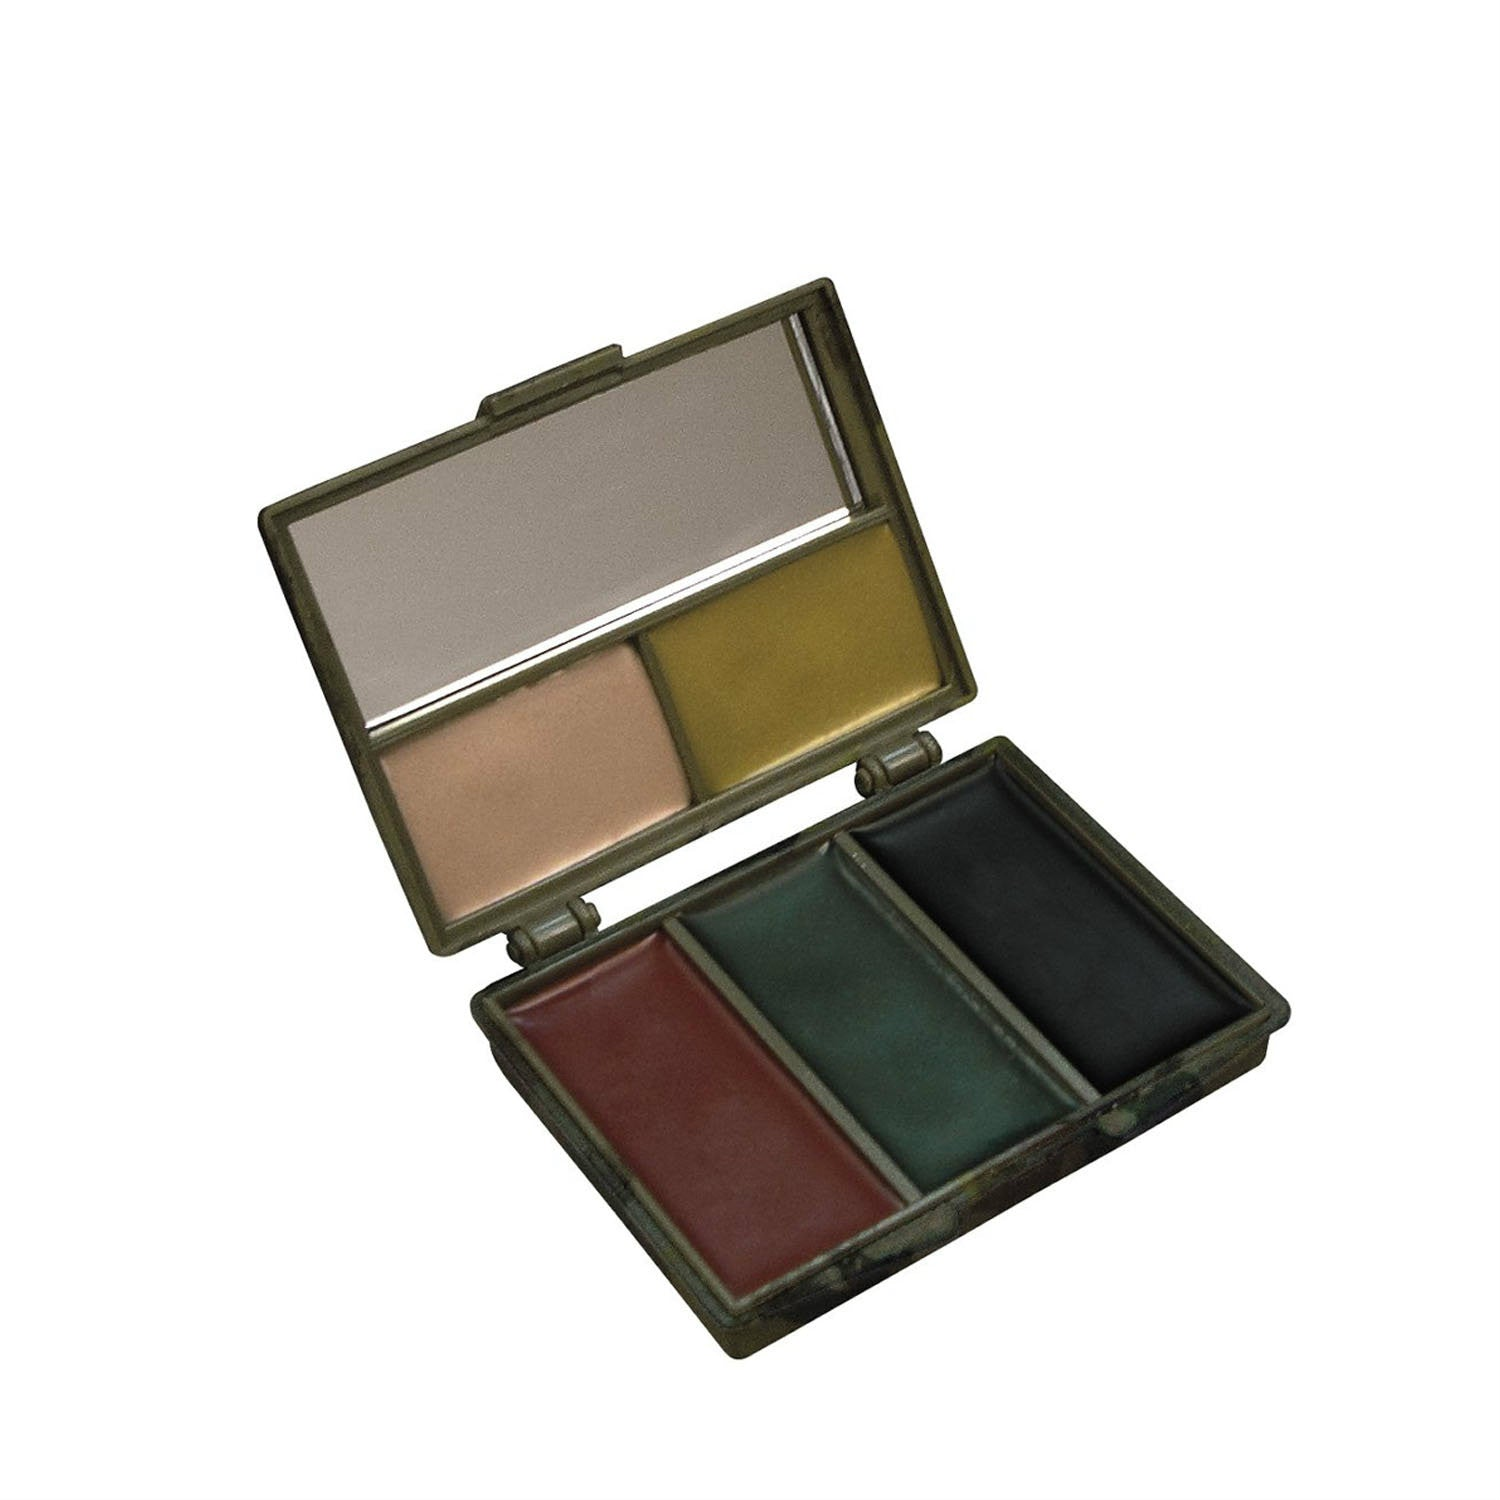 5 Color Camouflage Face Paint Compact - Indy Army Navy